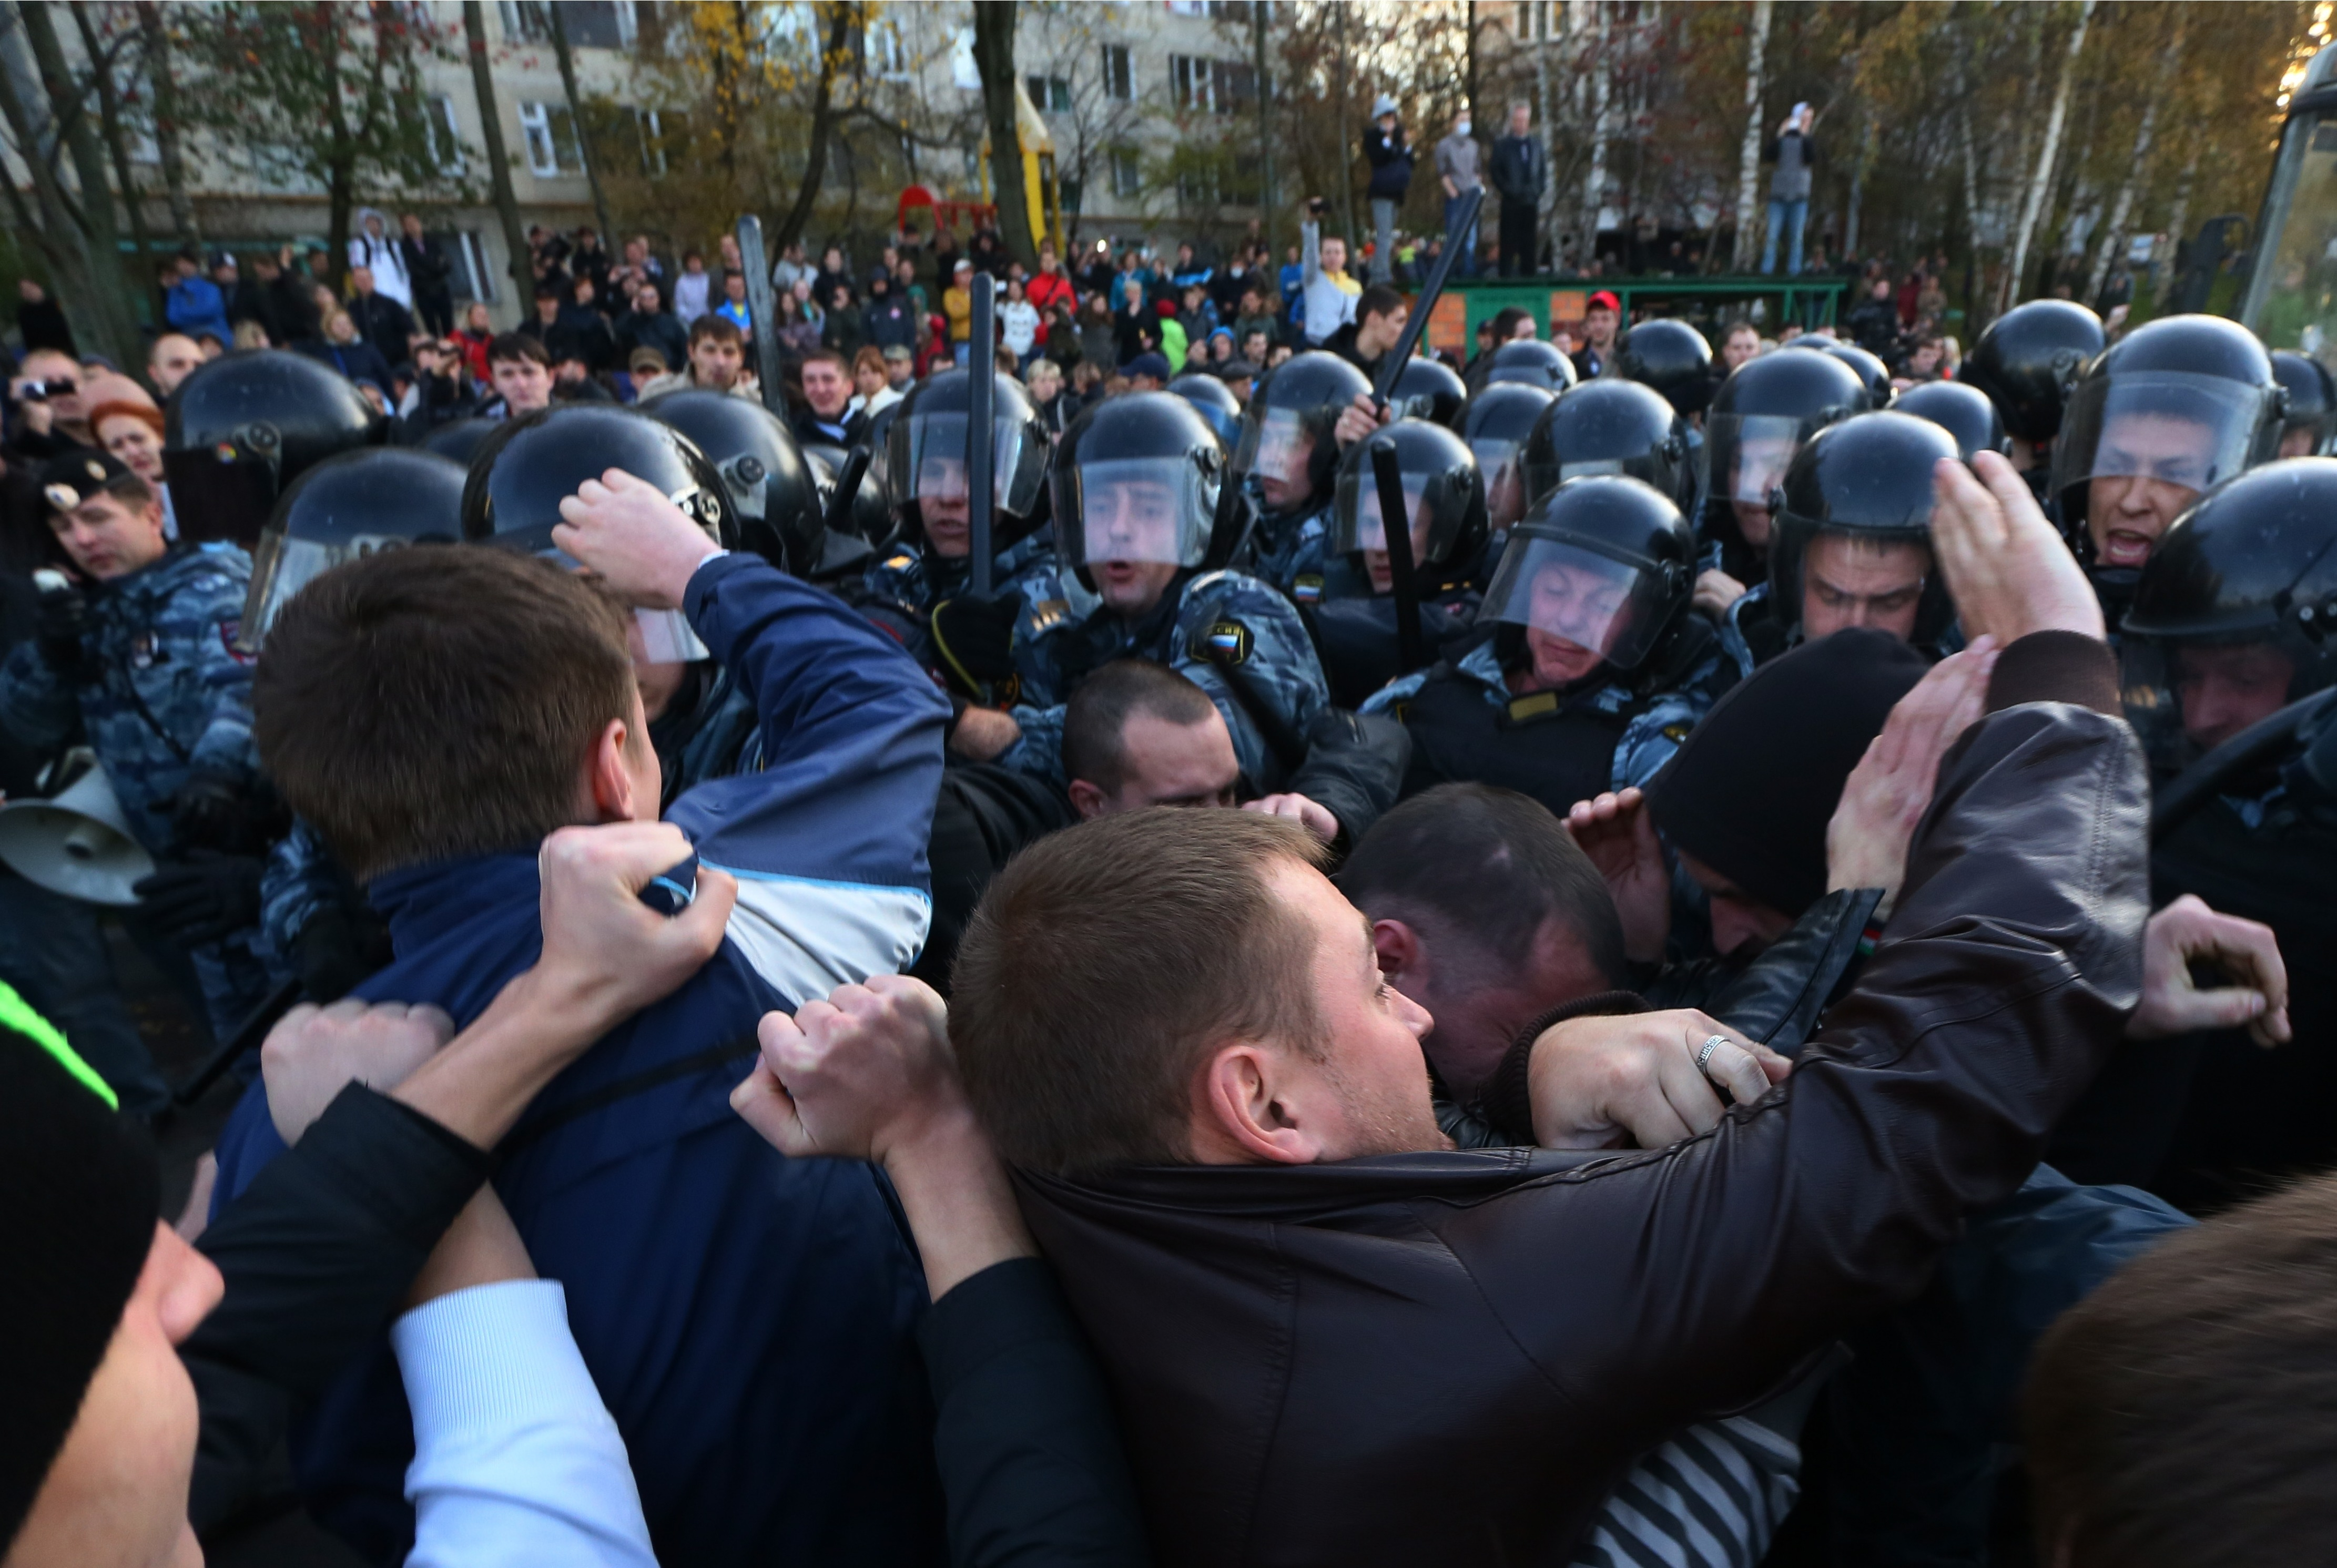 Protesters clash with police in Moscow suburb of Biryulyovo after last week's fatal stabbing of a 25-year-old local resident triggered demands for eviction of migrant workers. The more than 20 people wounded included six police officers.